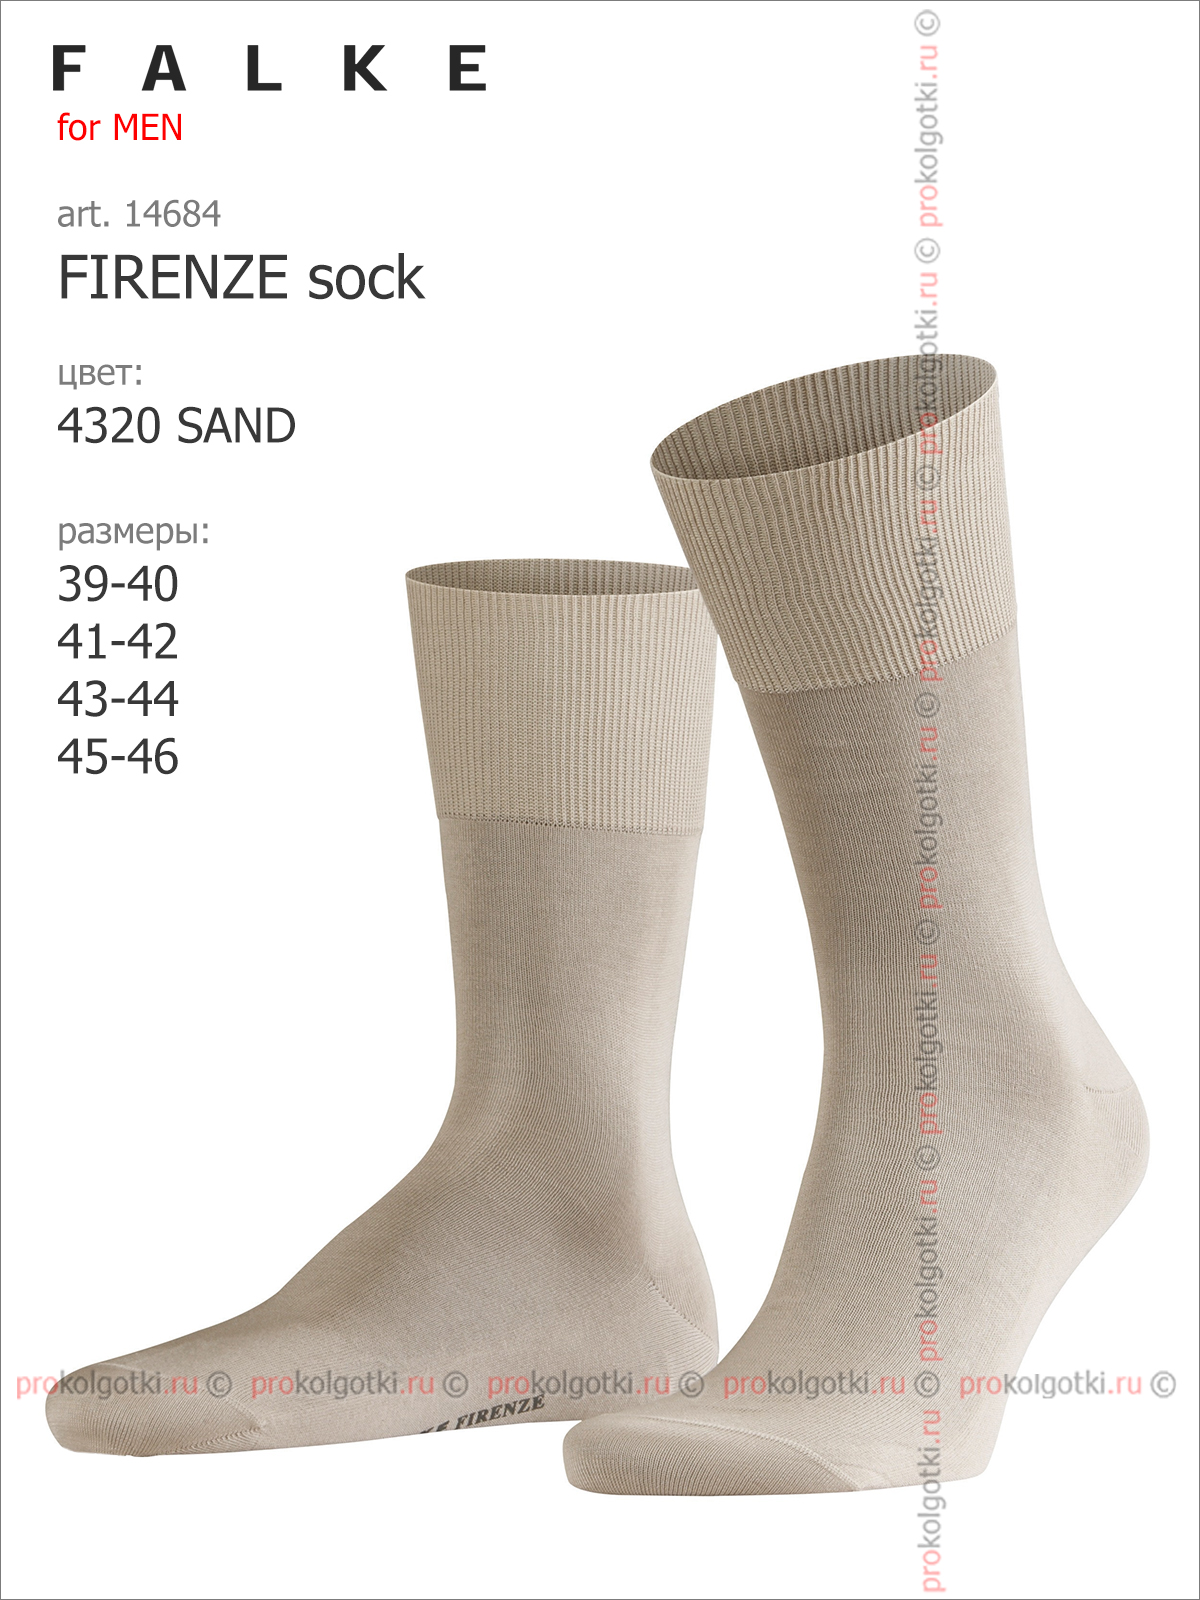 Носки Falke Art. 14684 Firenze Sock - фото 3